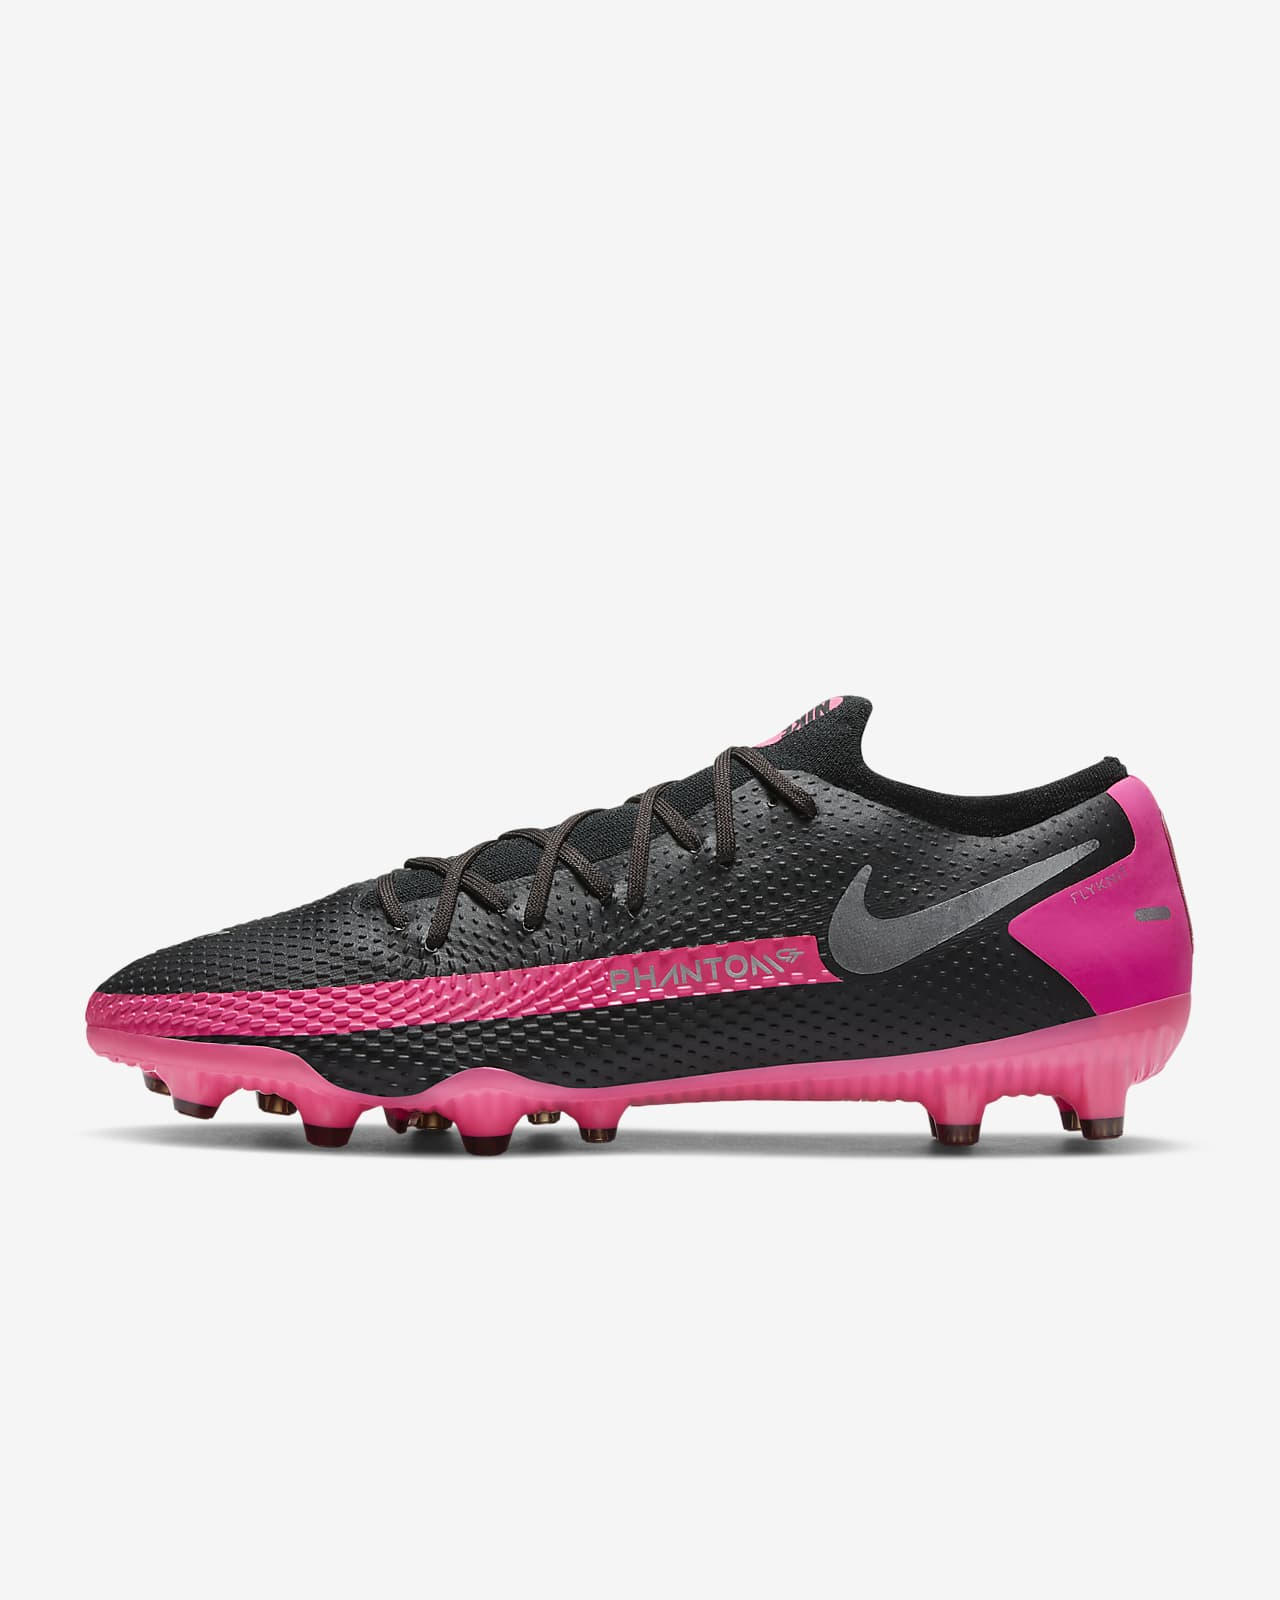 Nike Phantom GT Pro AG-Pro Artificial-Grass Football Boot